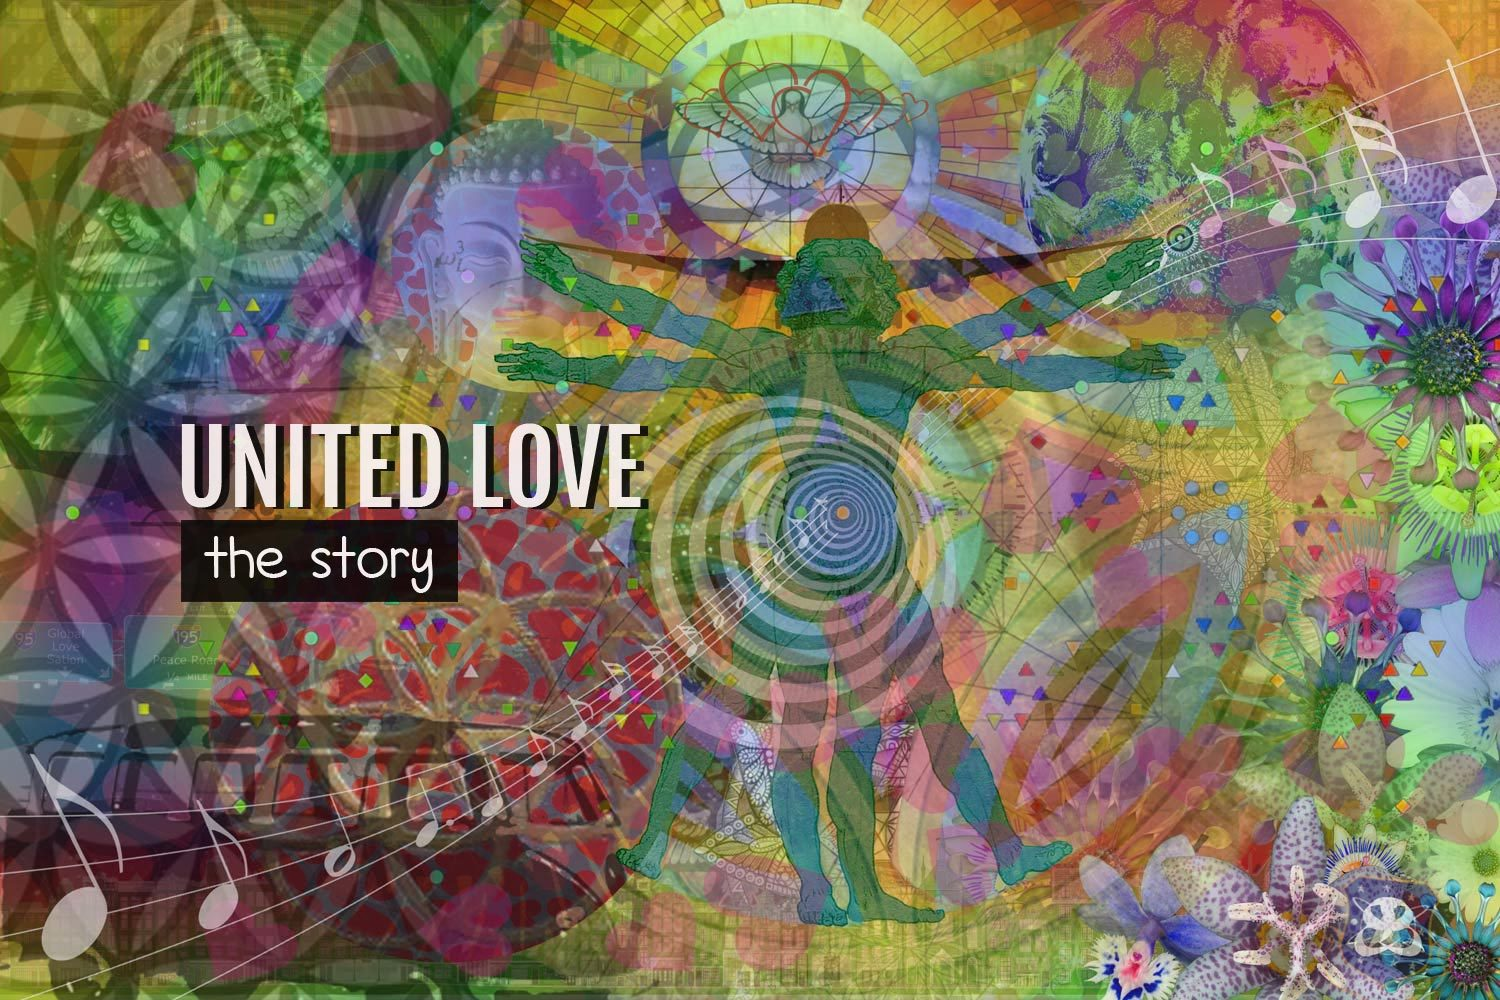 Digital Art Amsterdam - Art Story UNITED LOVE